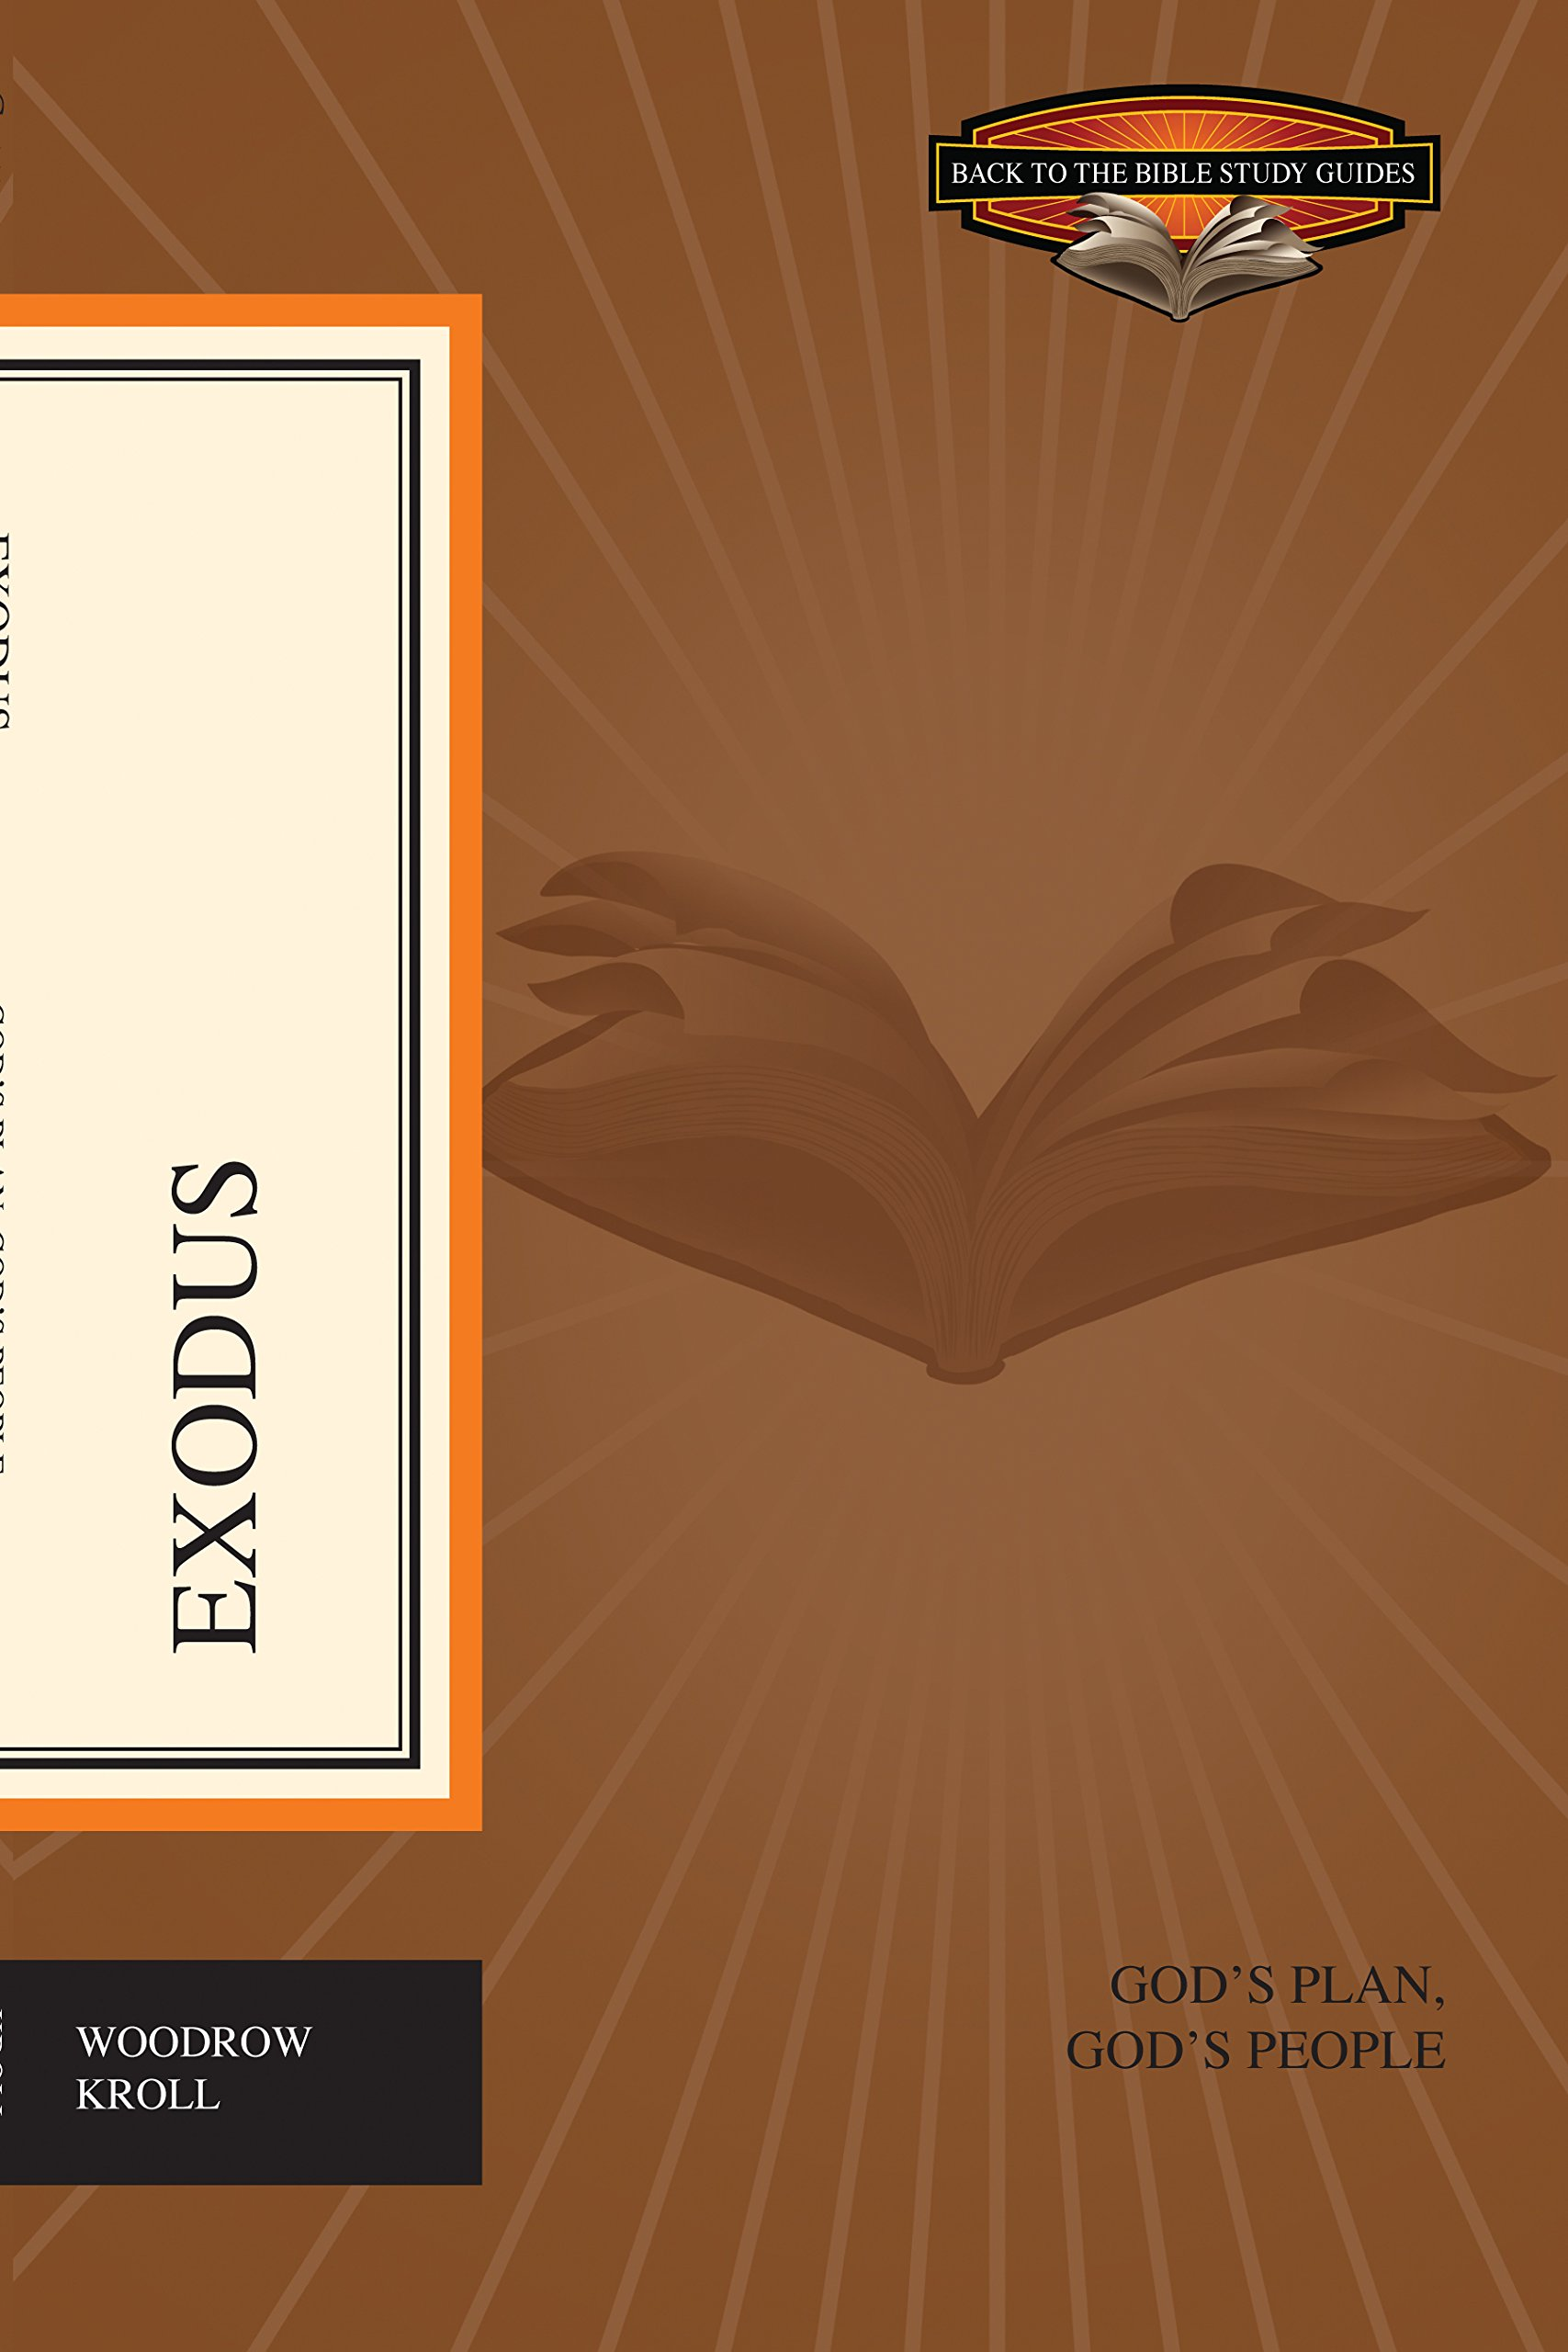 Exodus: Gods Plan, Gods People (Back to the Bible Study Guides)